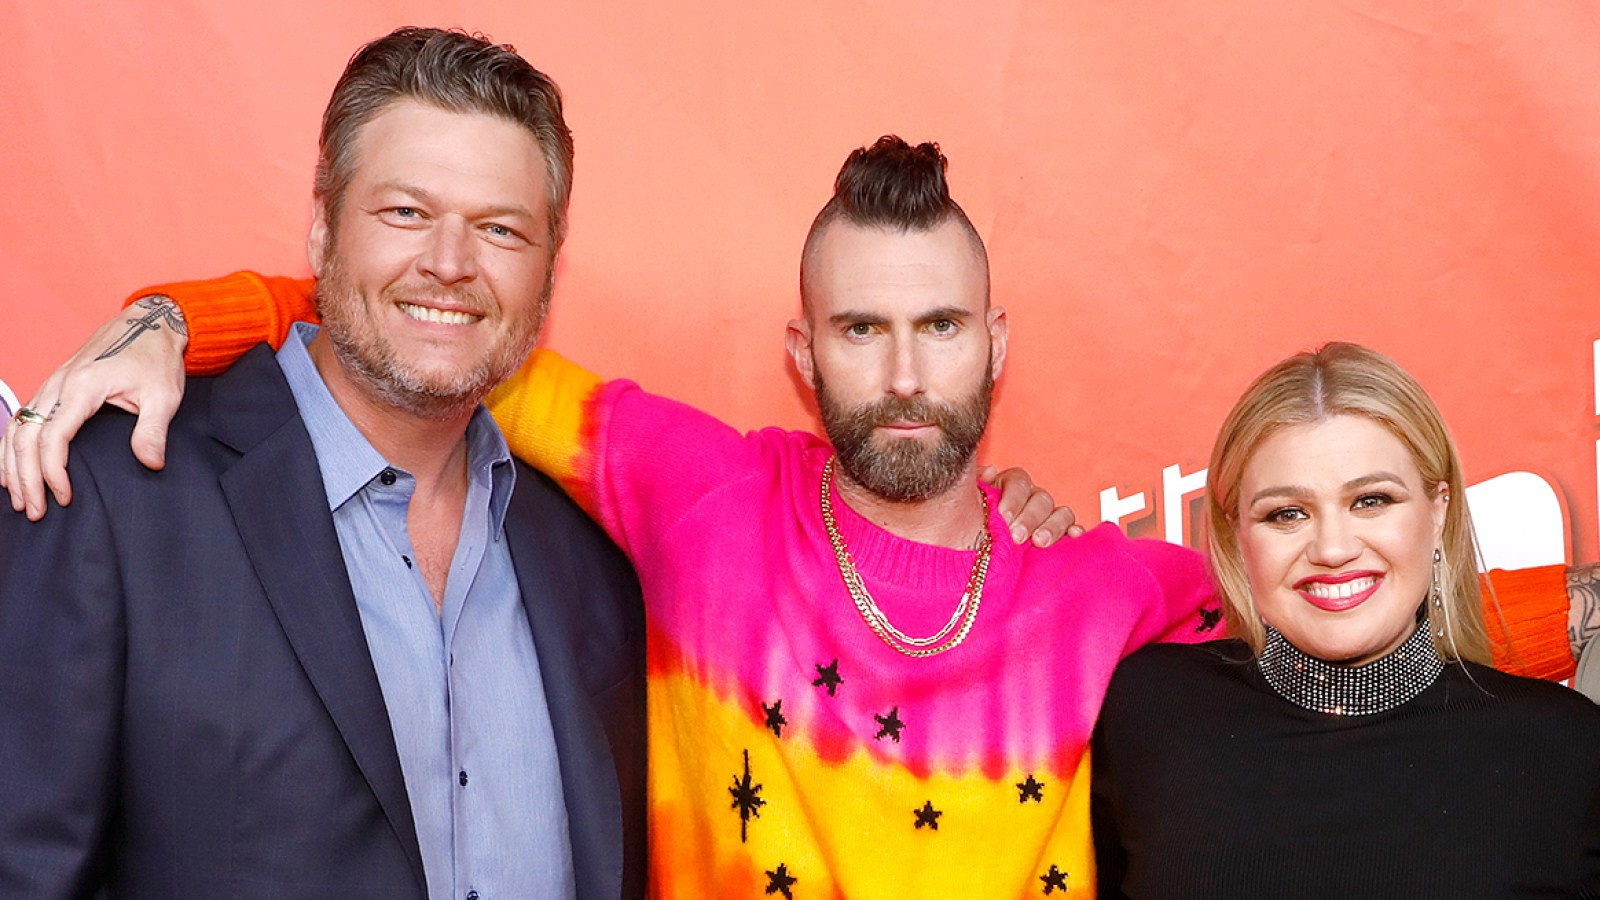 61aed4483 Blake Shelton, Kelly Clarkson and More React to Adam Levine's Shocking Exit  From 'The Voice'